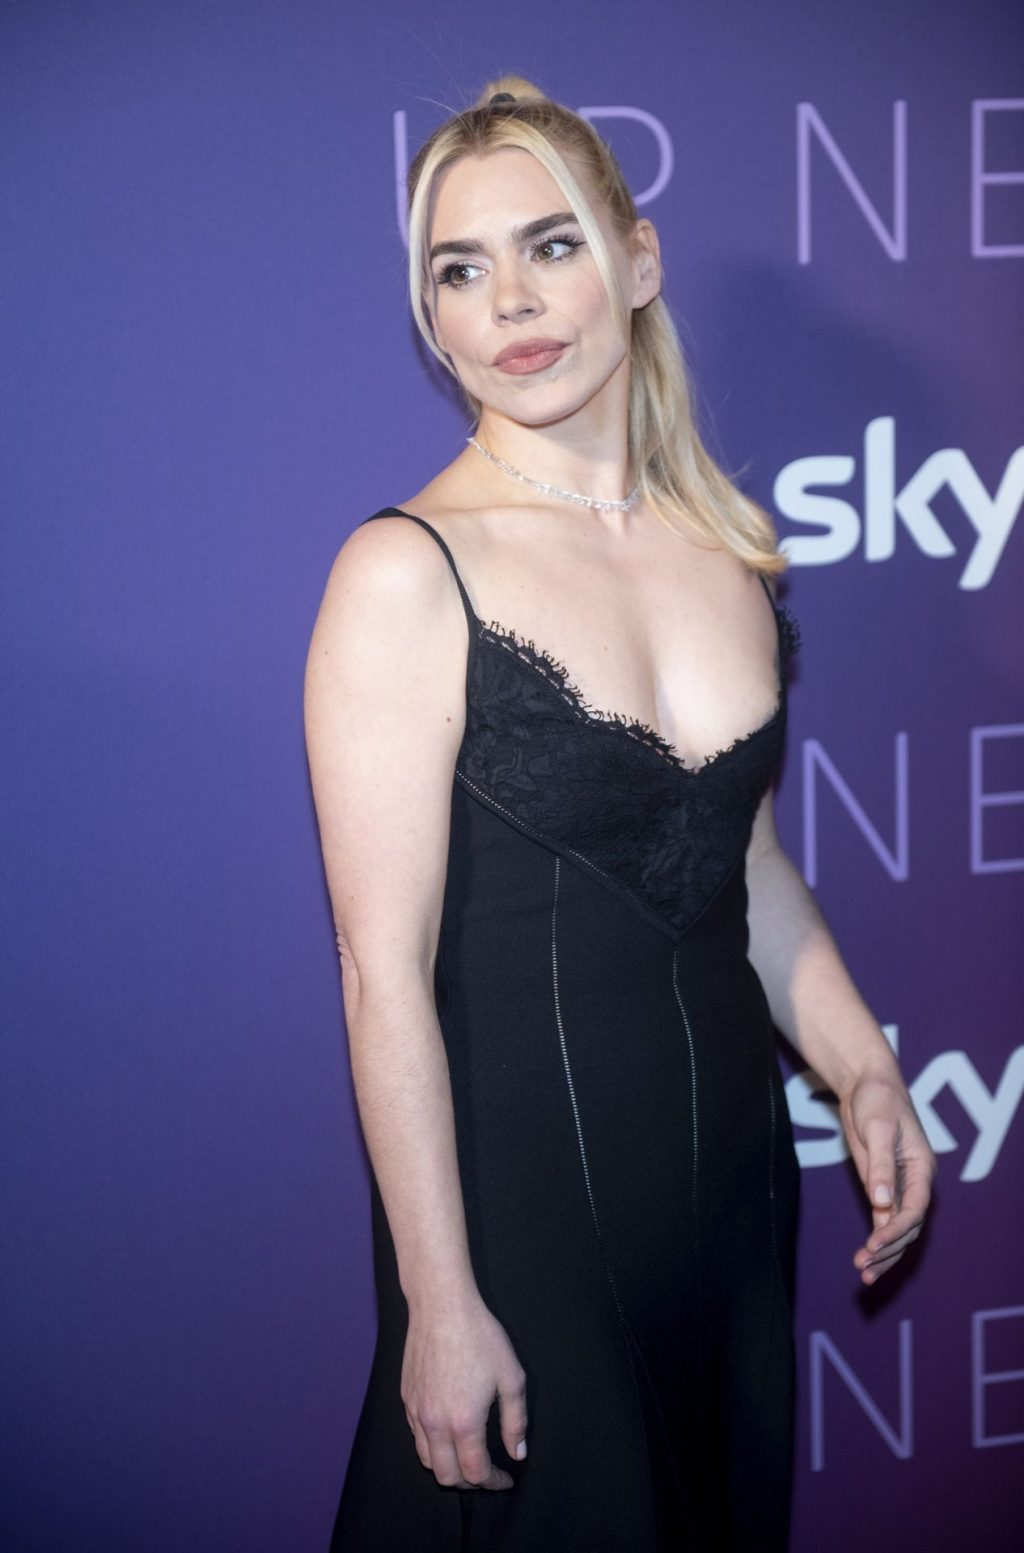 Billie Piper Sexy The Fappening Blog 37 1024x1553 - Billie Piper Smiles at the Sky Up Next Event (67 Photos)